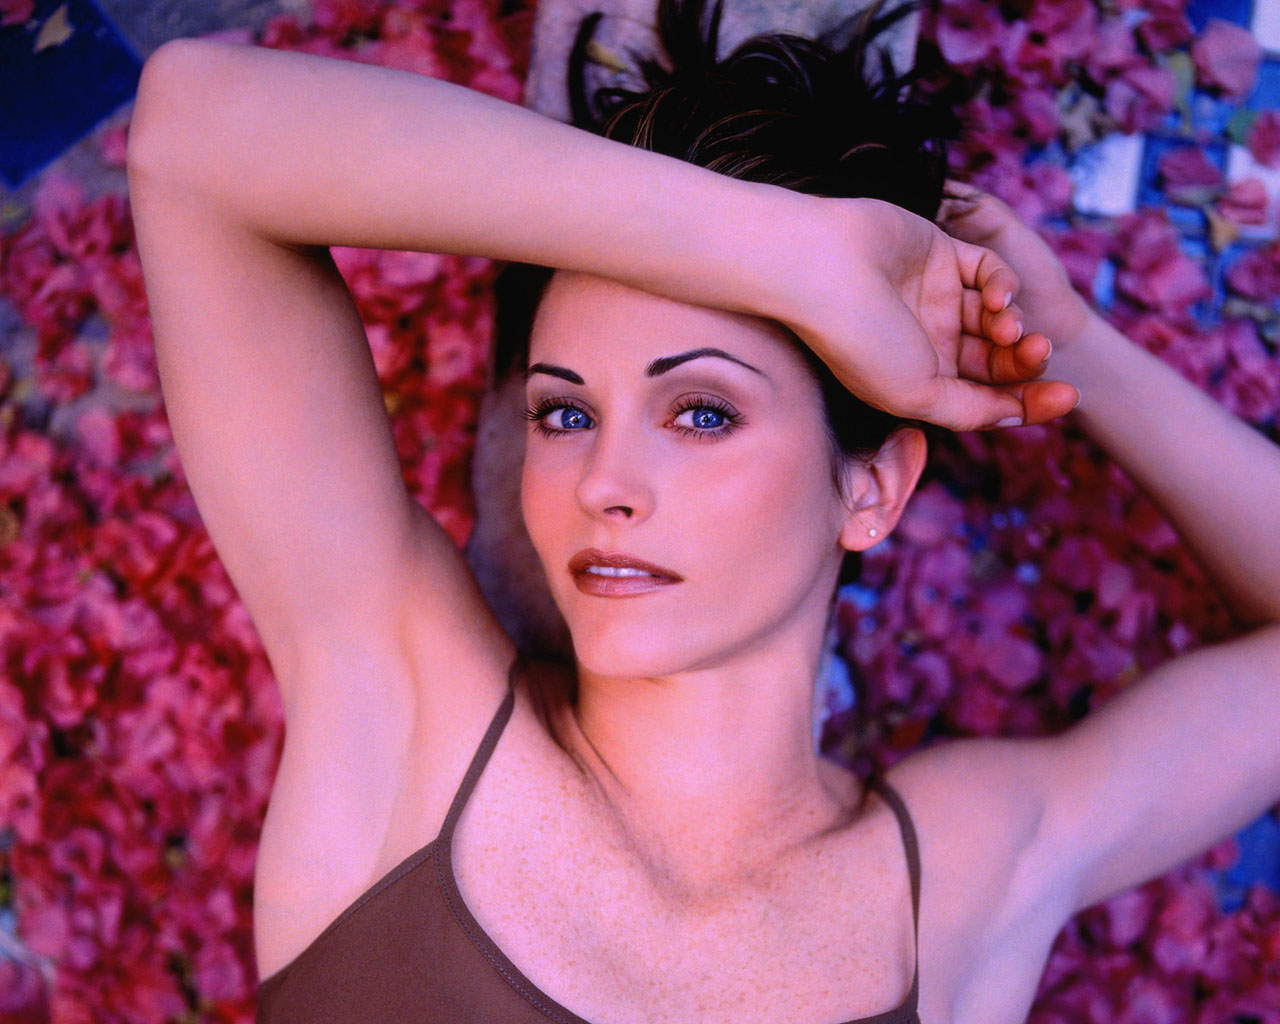 1280x1024 - Courtney Cox Wallpapers 24